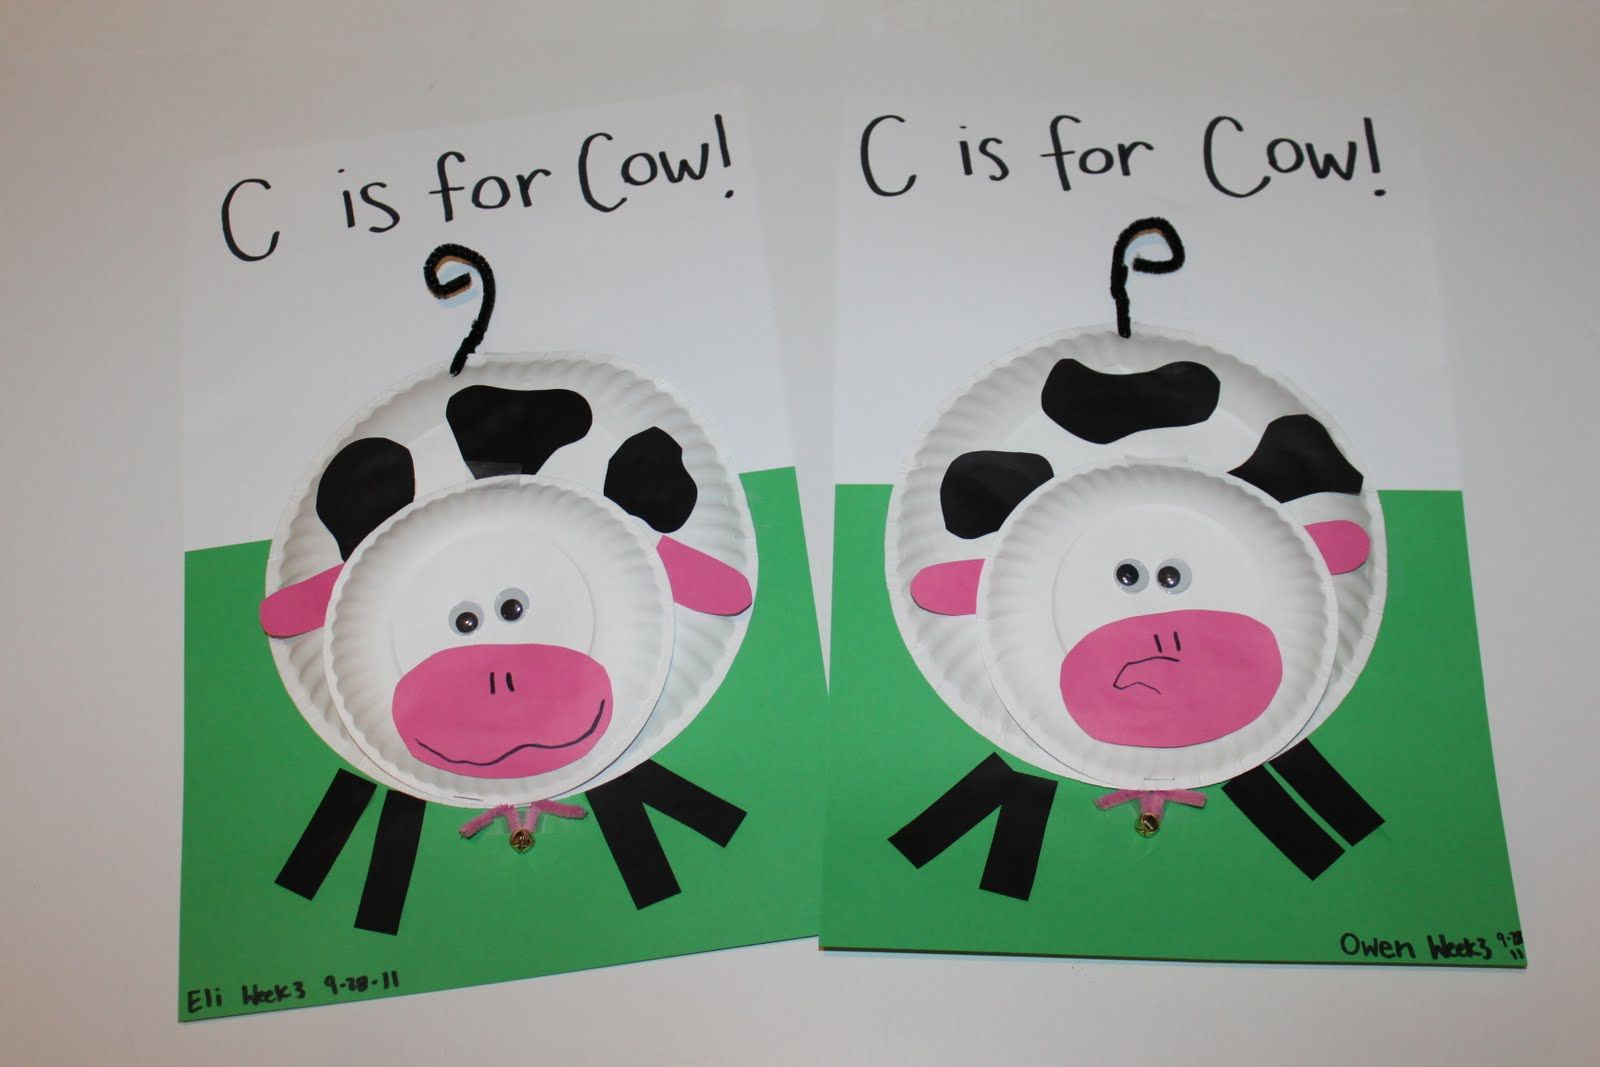 c is for cow...which is for the best freaking animal ever!  (this is what my children will be taught anyway) haha